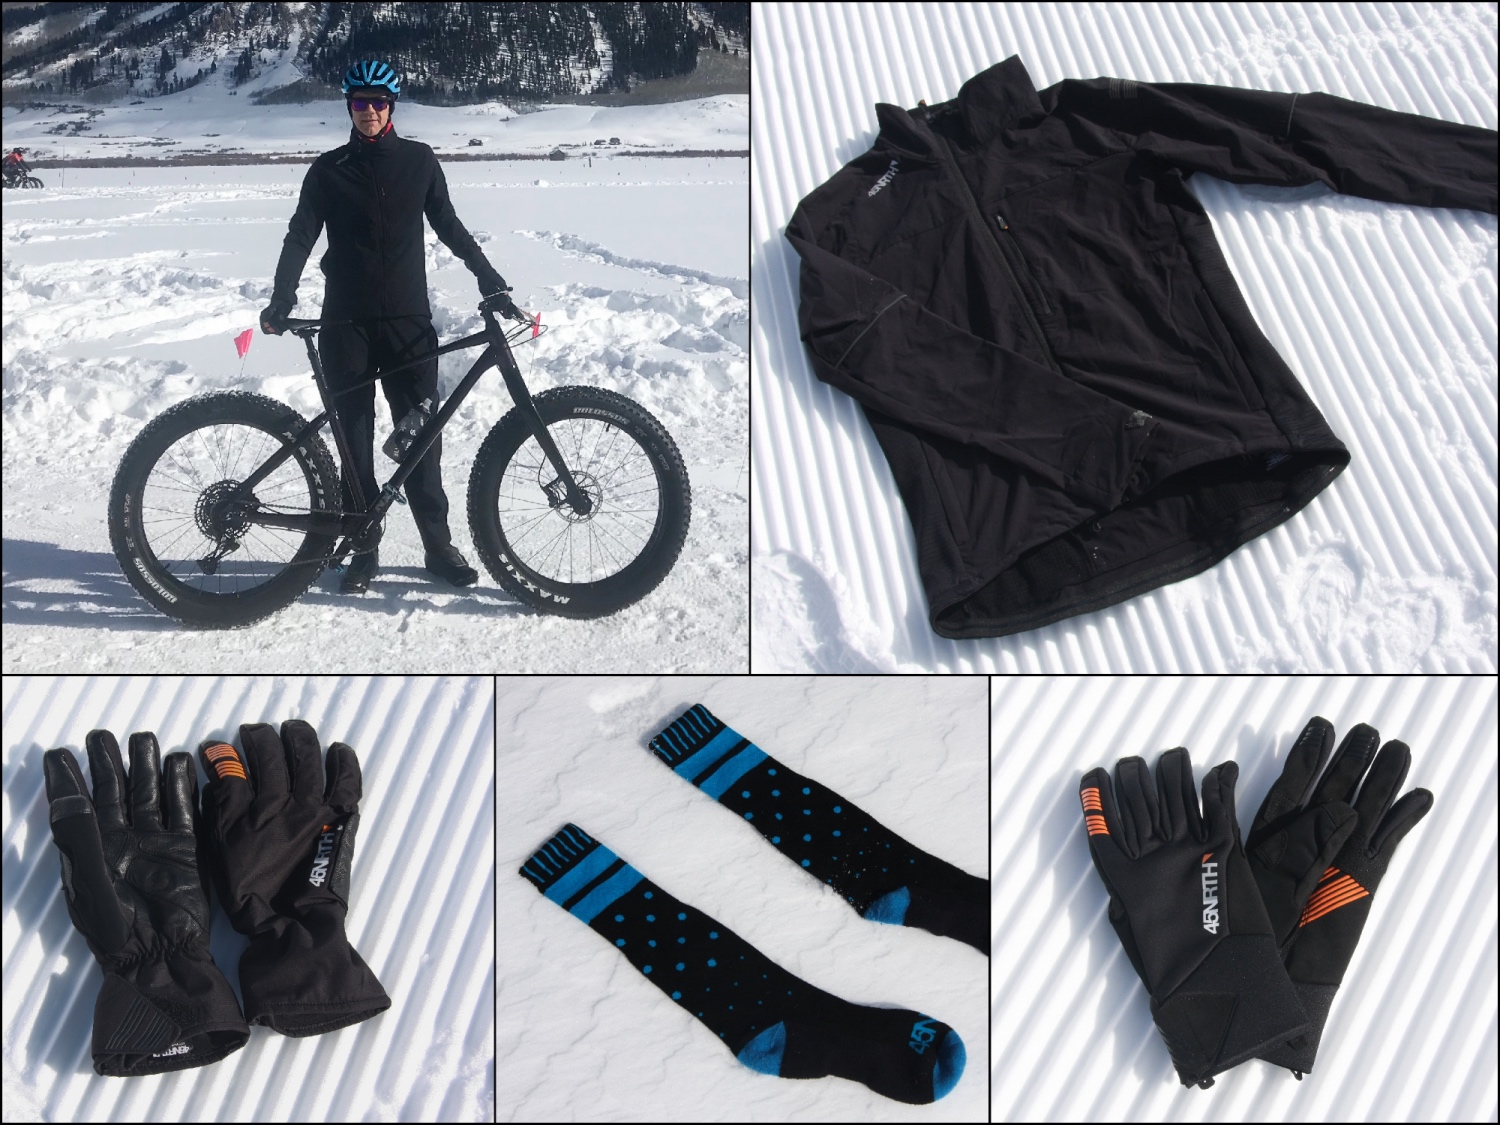 45NRTH's sole focus is creating gear and apparel for wintertime bike riding, and it shows in their attention to details large and small that will matter to cyclists. Photos by Jason Sumner